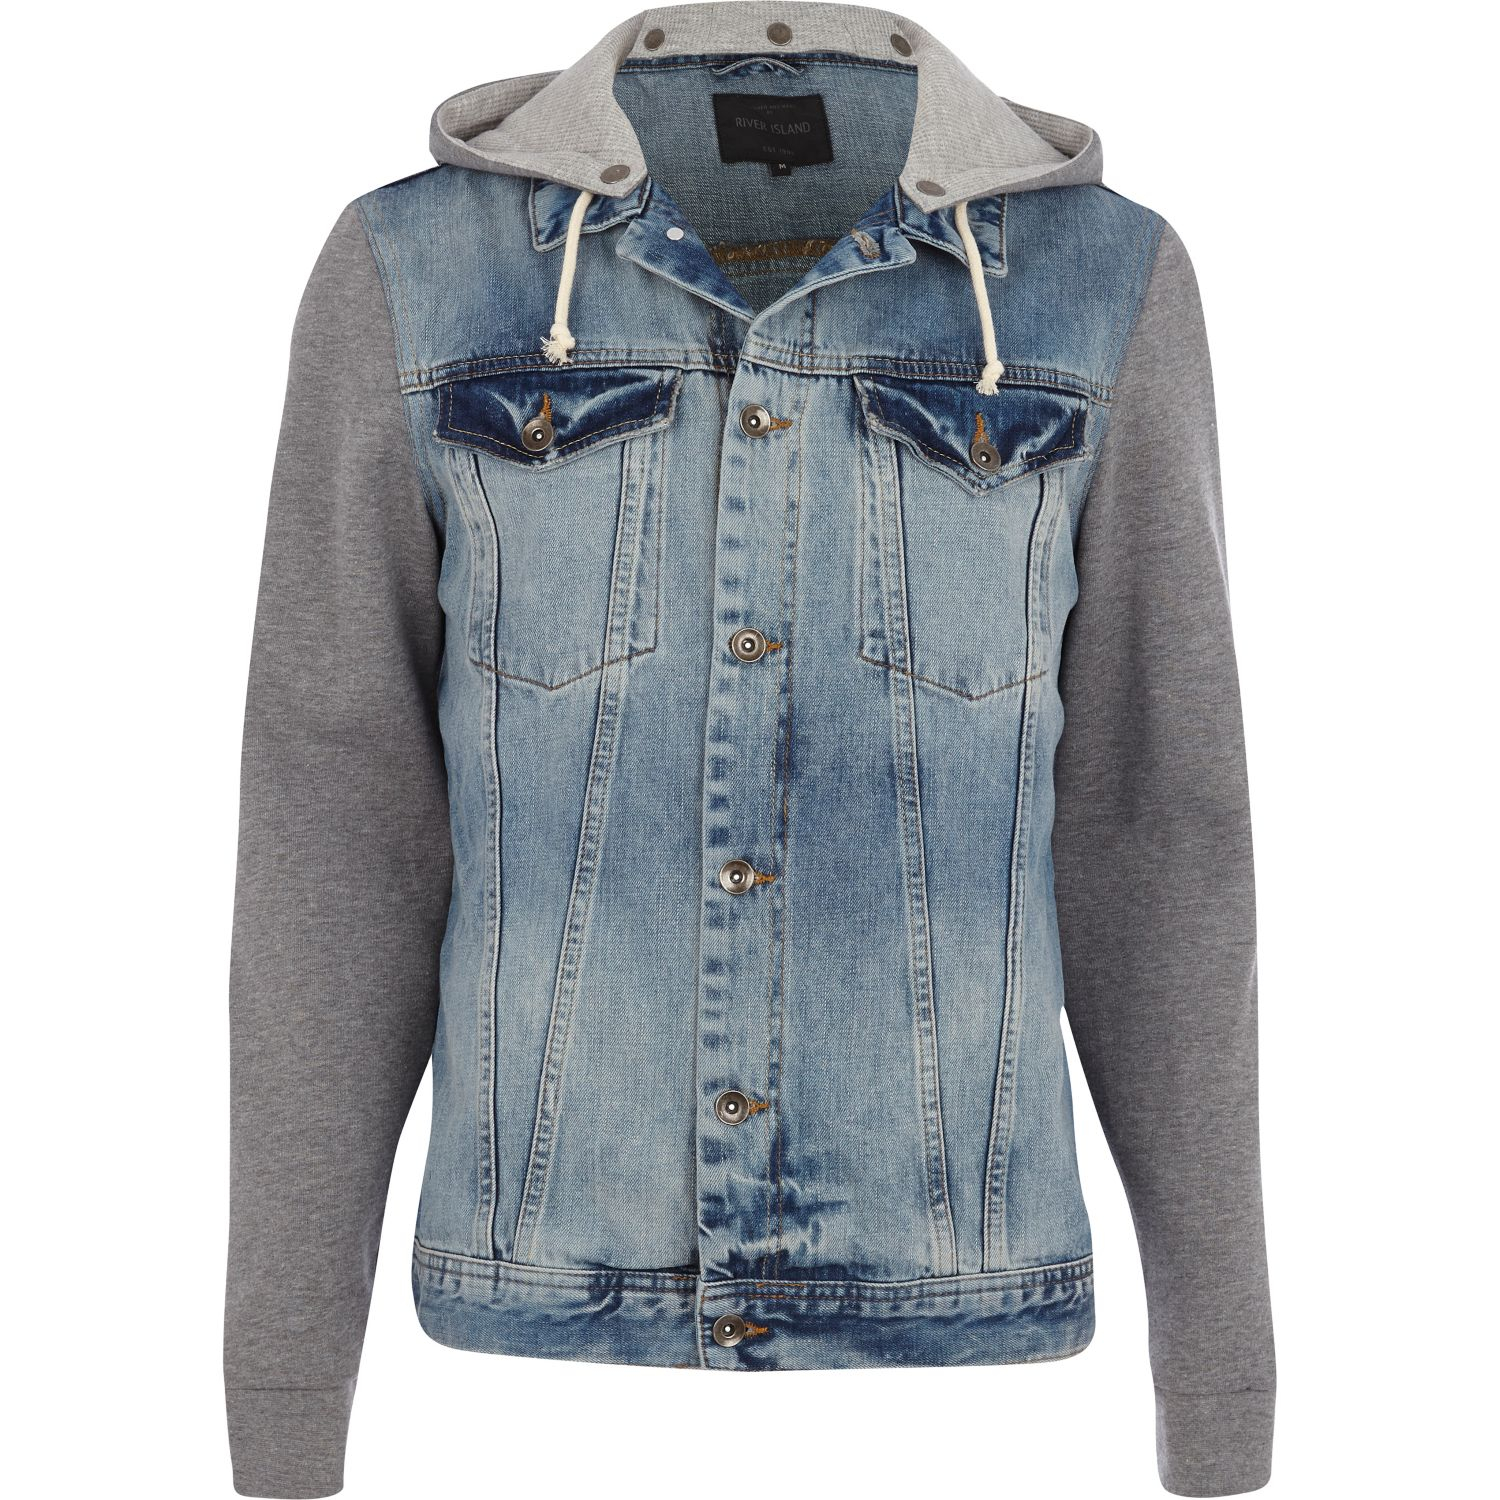 Free shipping BOTH ways on denim jacket with jersey sleeve, from our vast selection of styles. Fast delivery, and 24/7/ real-person service with a smile. Click or call